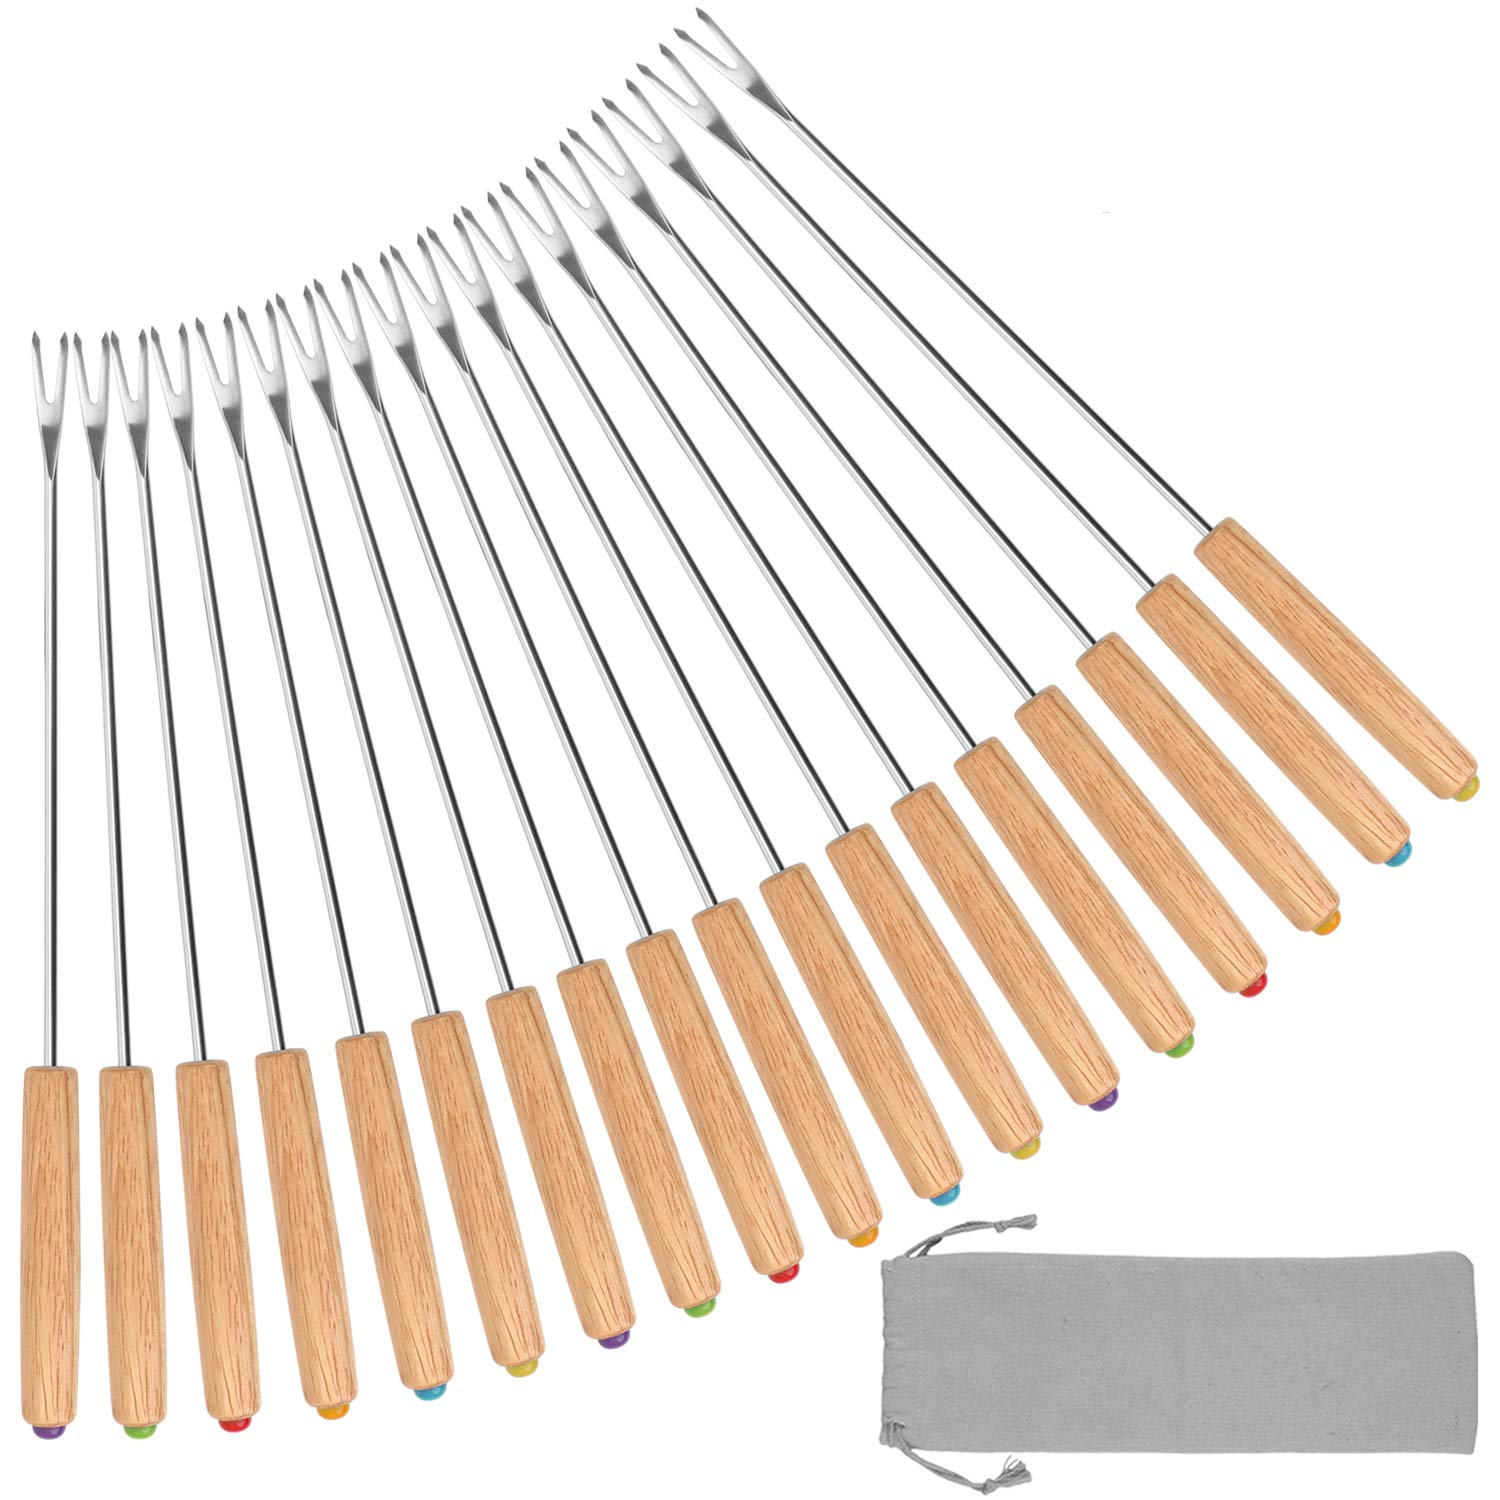 STYDDI Set of 18 Stainless Steel Color Coding Chocolate Fountain Cheese Fondue Forks with Oak Wood Handle Heat Resistant, Skewers Marshmallow Roasting Sticks, 9.5inch